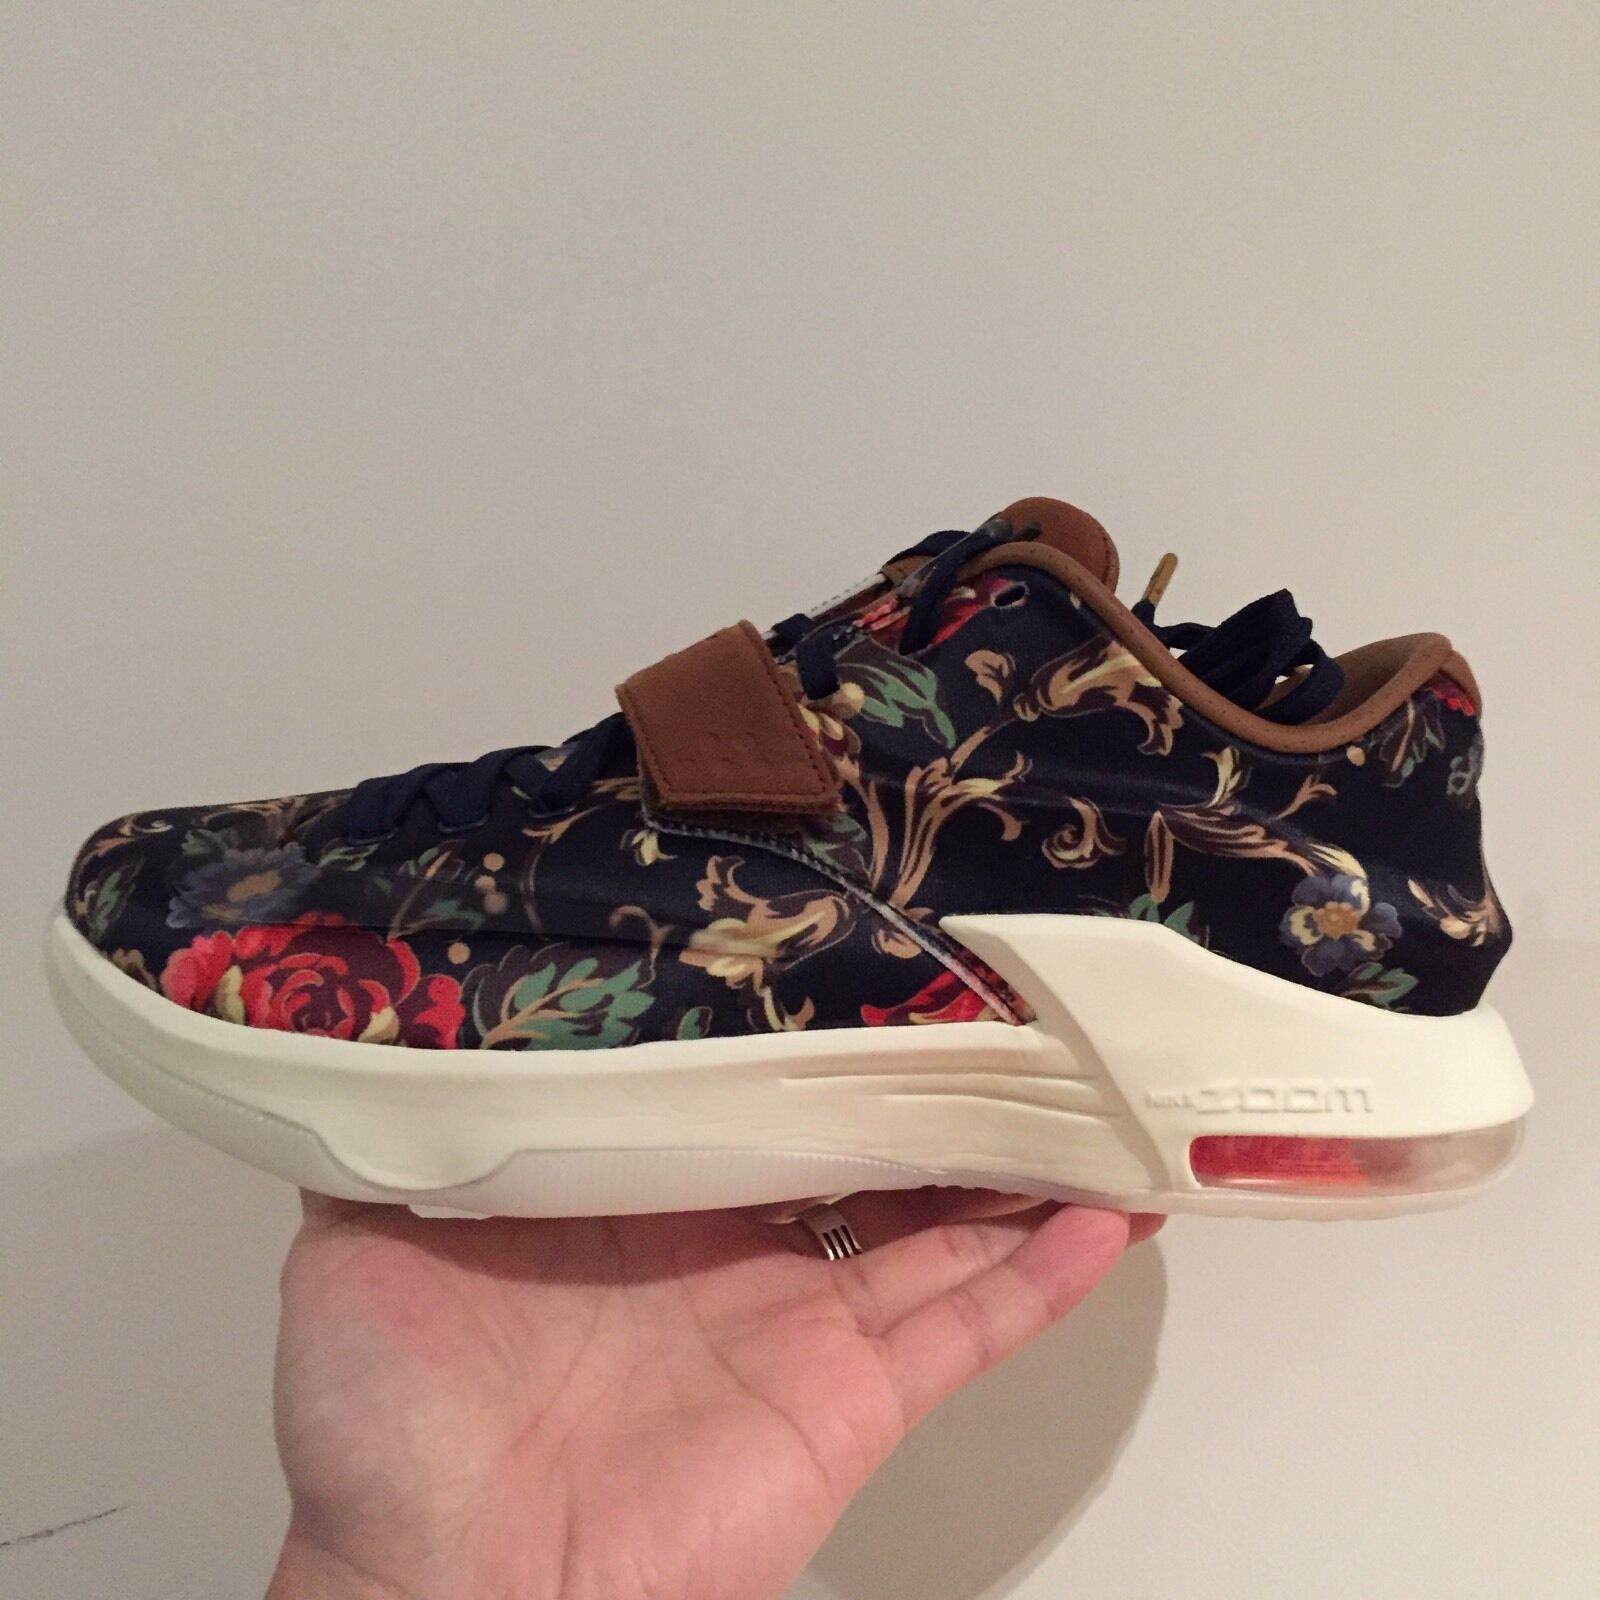 66595bf263e3a Nike KD VII Navy Ext Floral QS Midnight Navy VII homme Basketball Baskets7  US 8 EU 41 d44e38